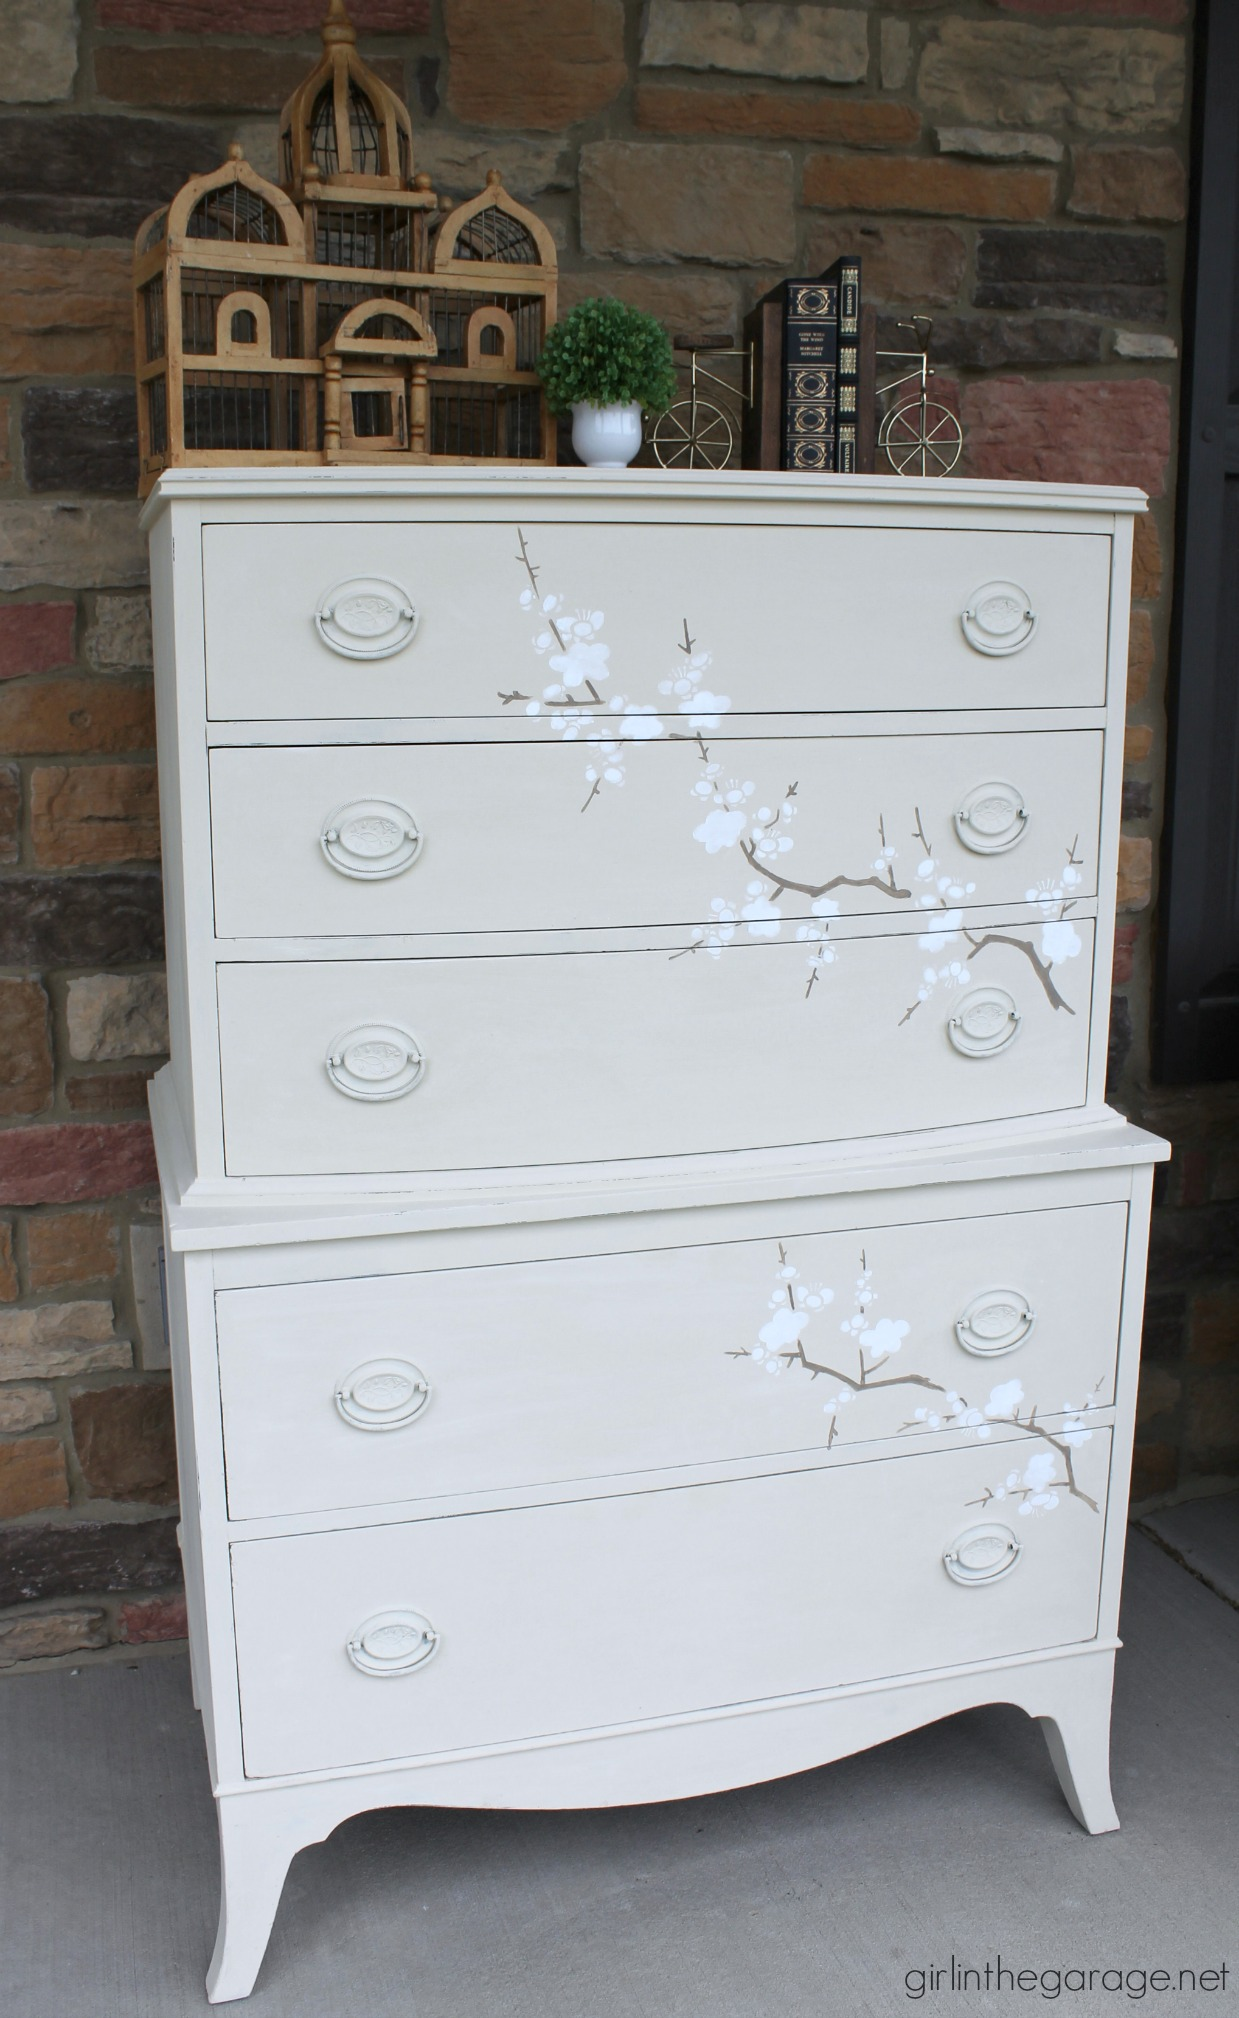 How to get this gorgeous cherry blossom look on your next furniture makeover! By Girl in the Garage